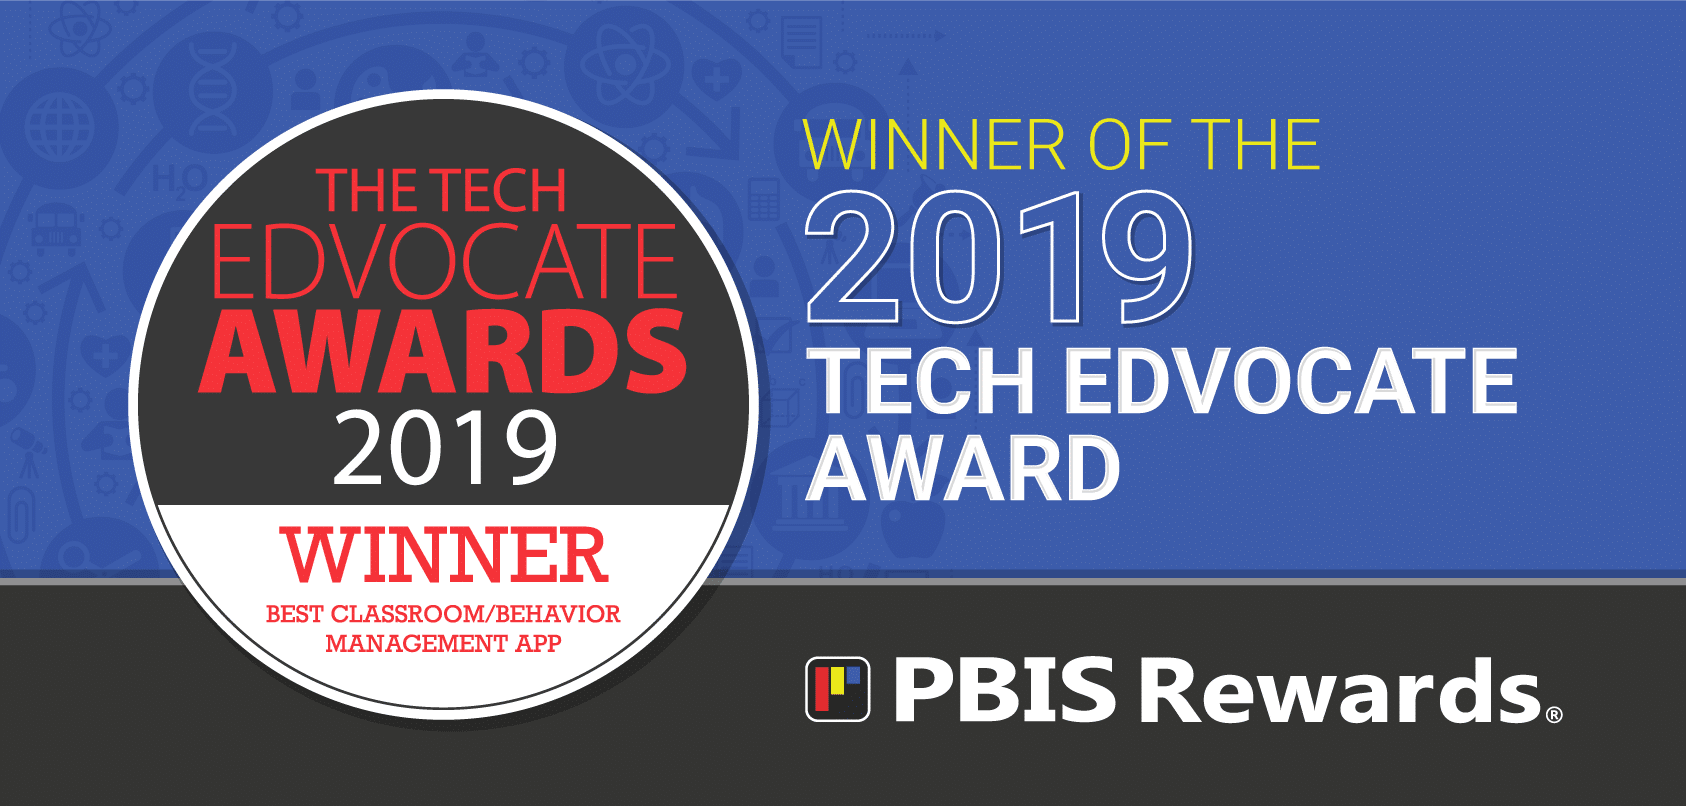 2019 Tech Edvocate Award Winner Best Classroom/Behavior Management Tool